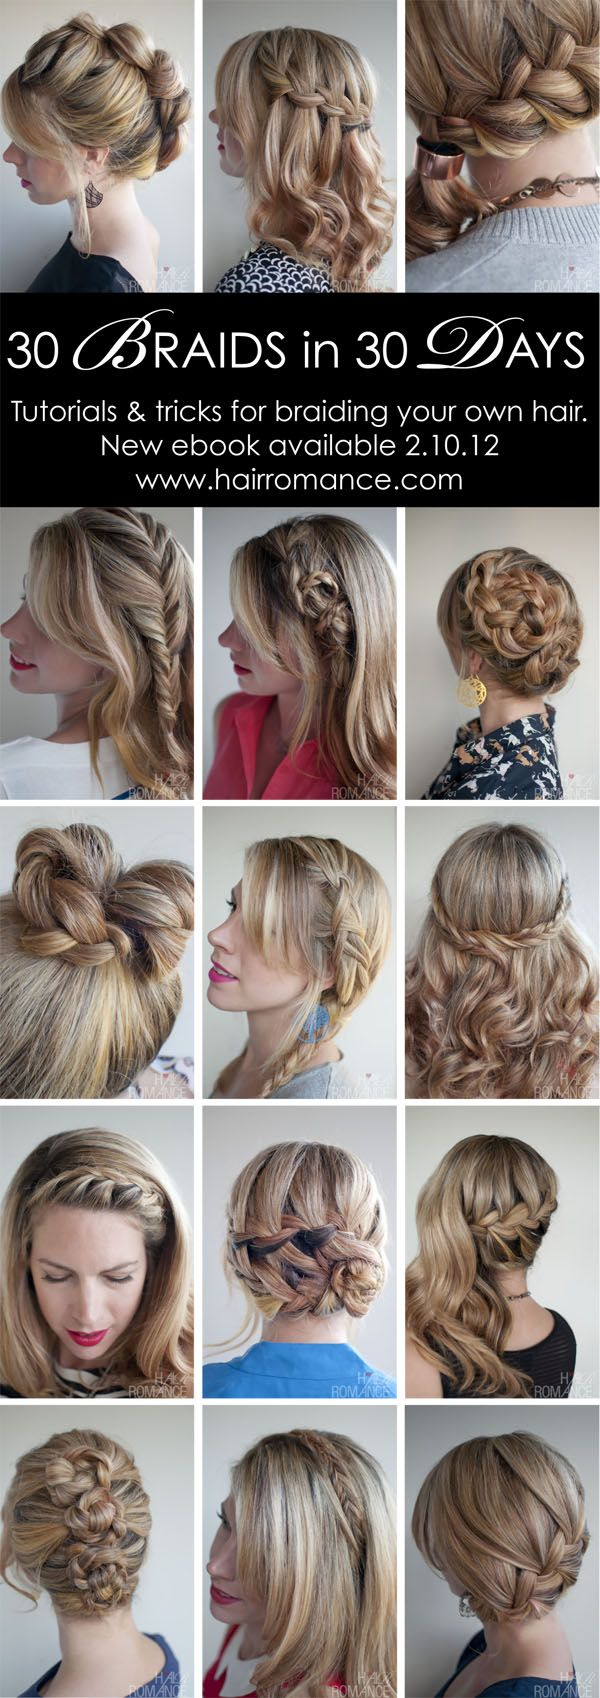 Marvelous 1000 Images About Hair On Pinterest Crown Braids Lavender Hair Short Hairstyles Gunalazisus